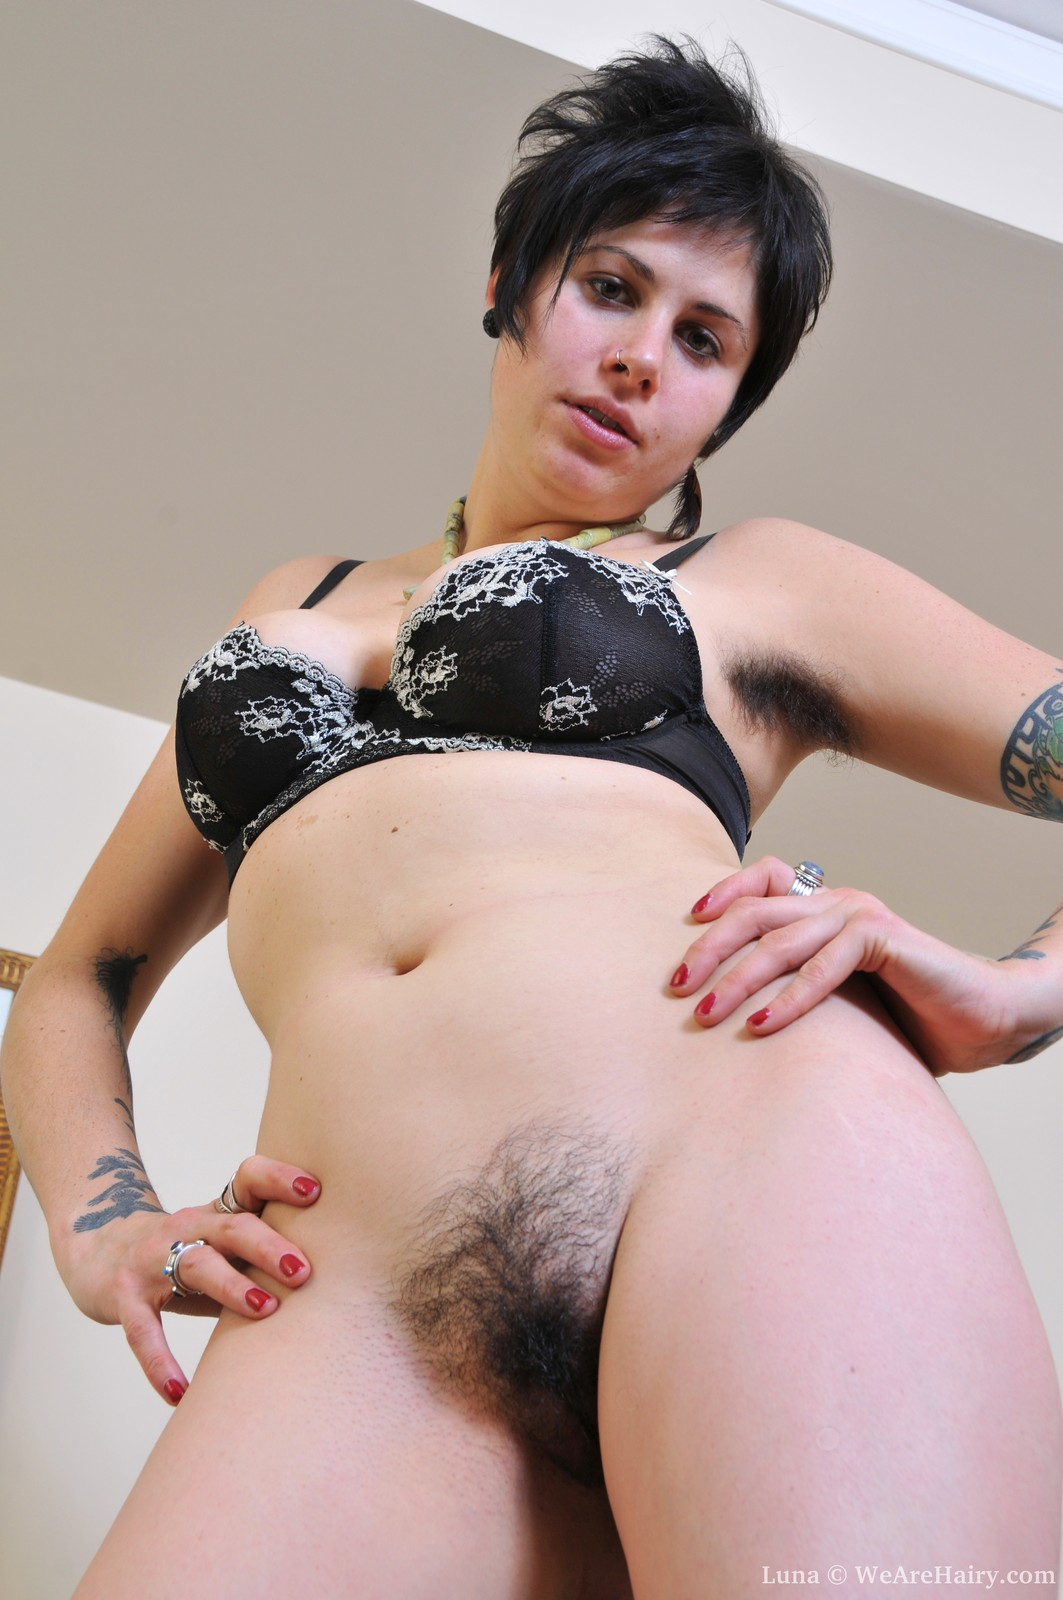 Wow hairy pussy porn exposed pics